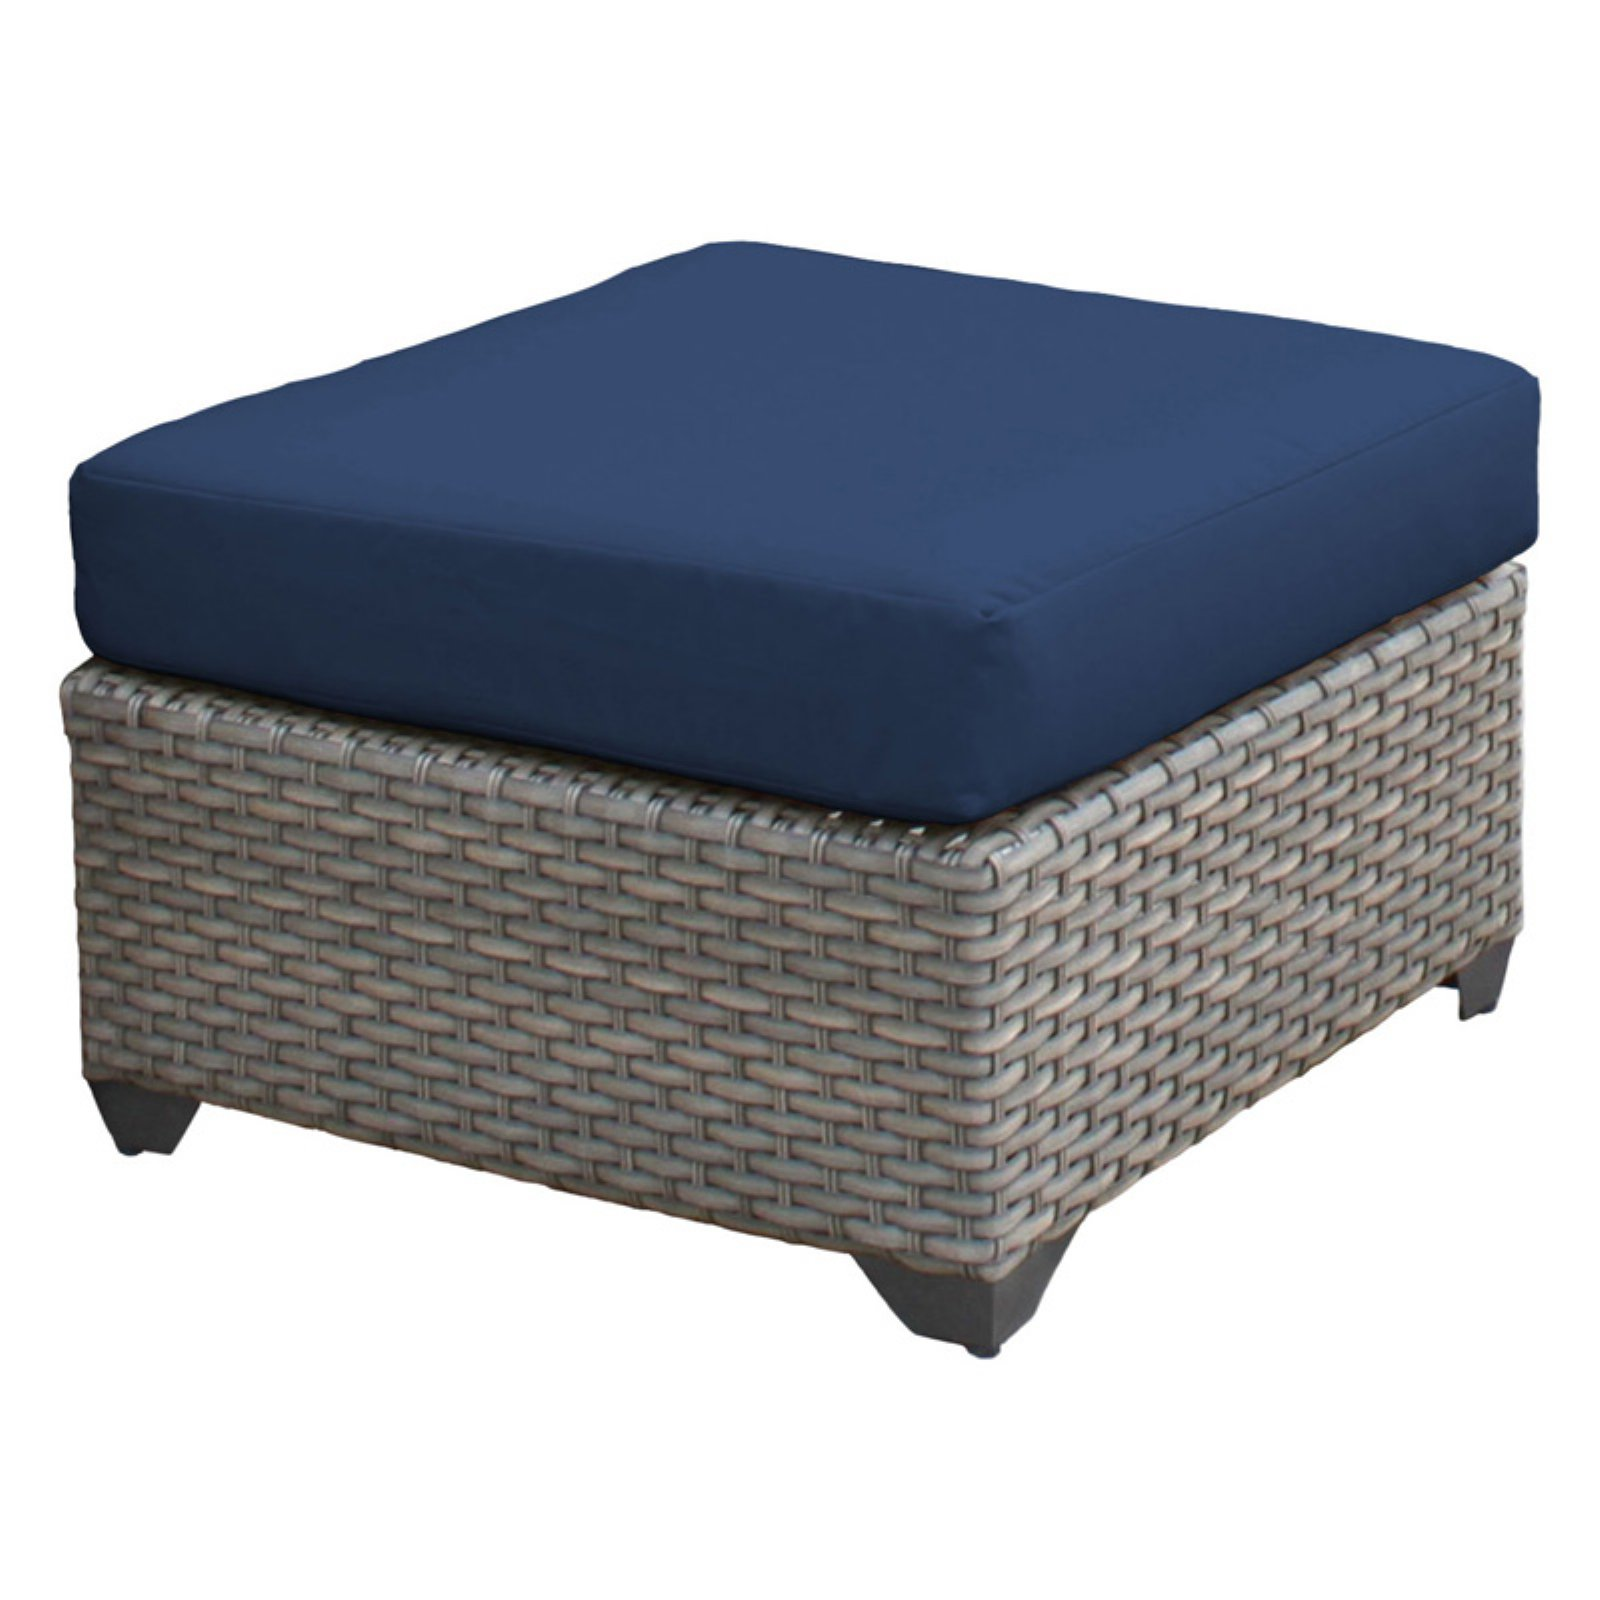 TK Classics Florence Wicker Outdoor Ottoman - Set of 2 Cushion Covers